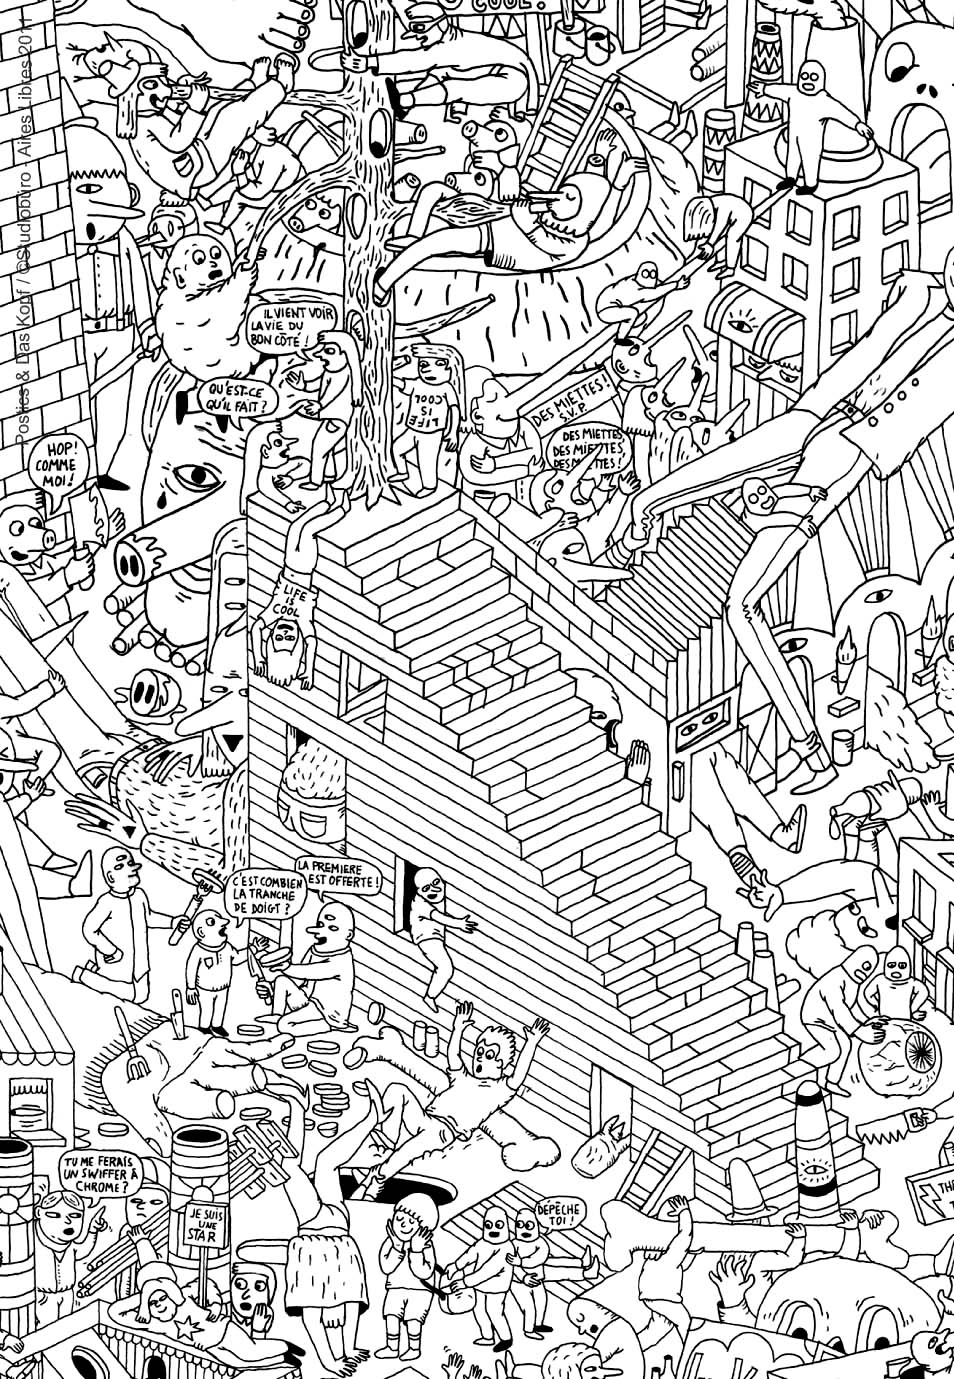 Doodle Art Doodling 11 Doodling Doodle Art Coloring Doodle Coloring Pages 2